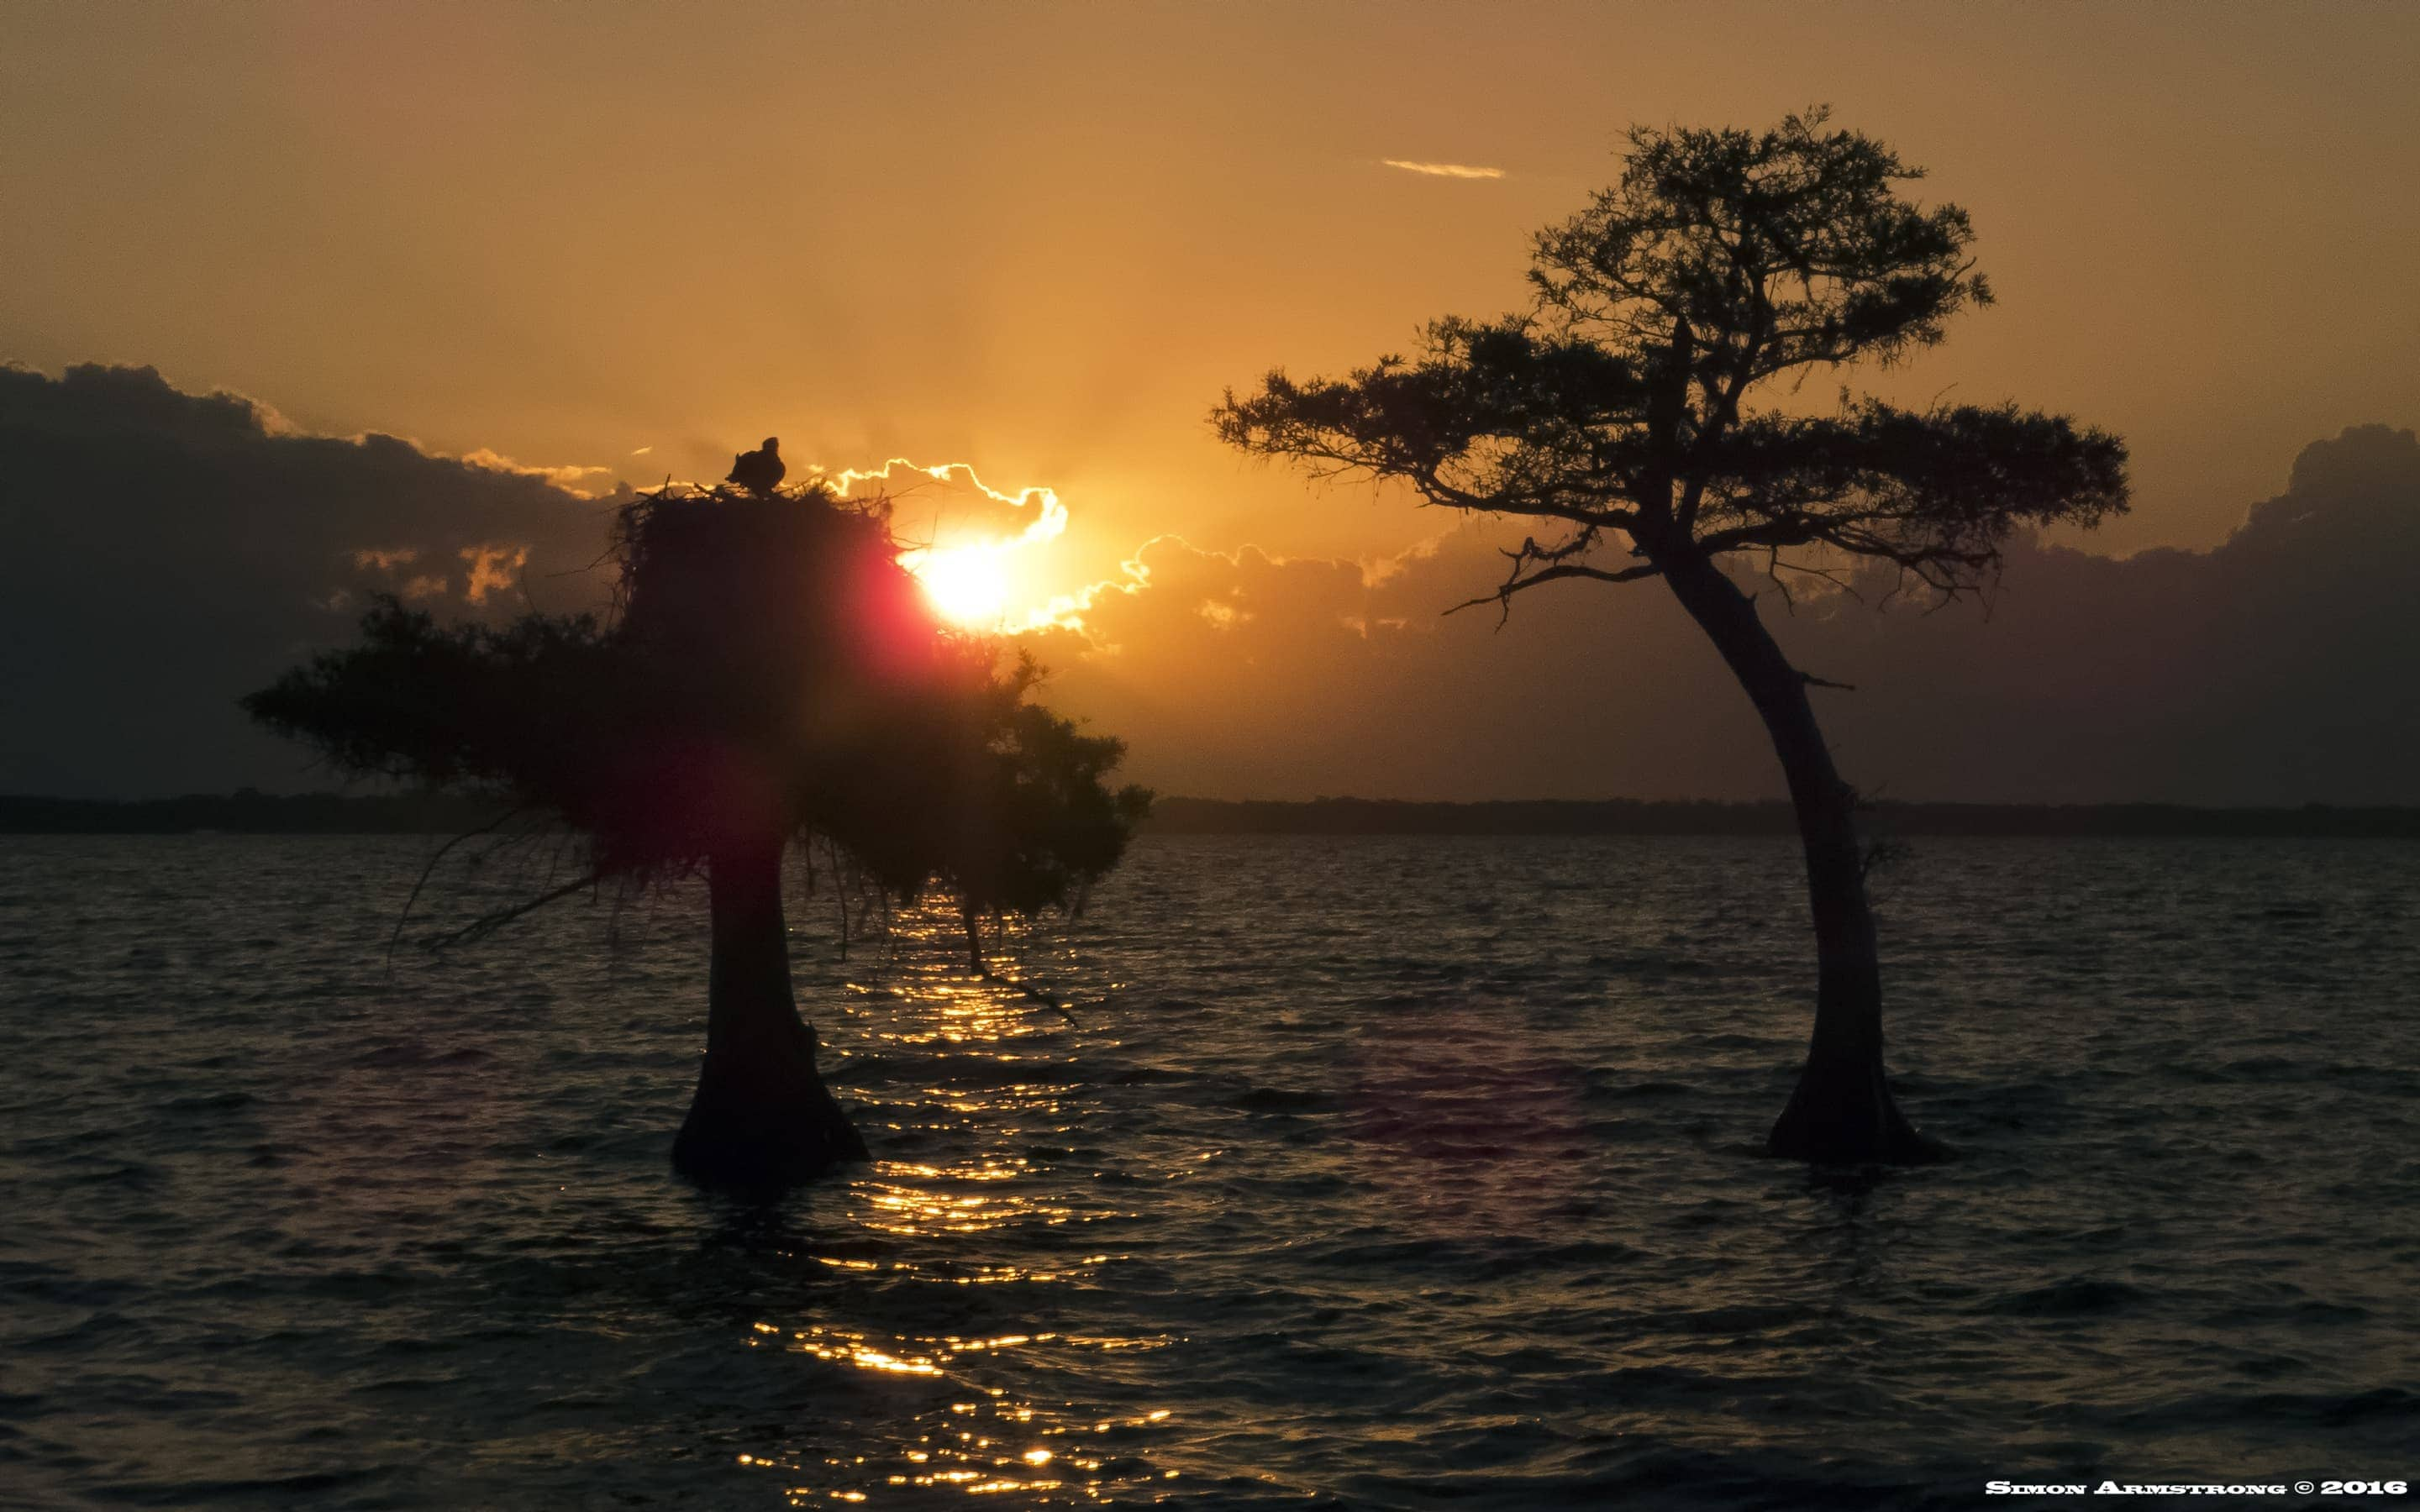 Sunrise on Blue Cypress Lake - photographed on the NaturesLens Ospreys of Blue Cypress Lake Photography Holiday